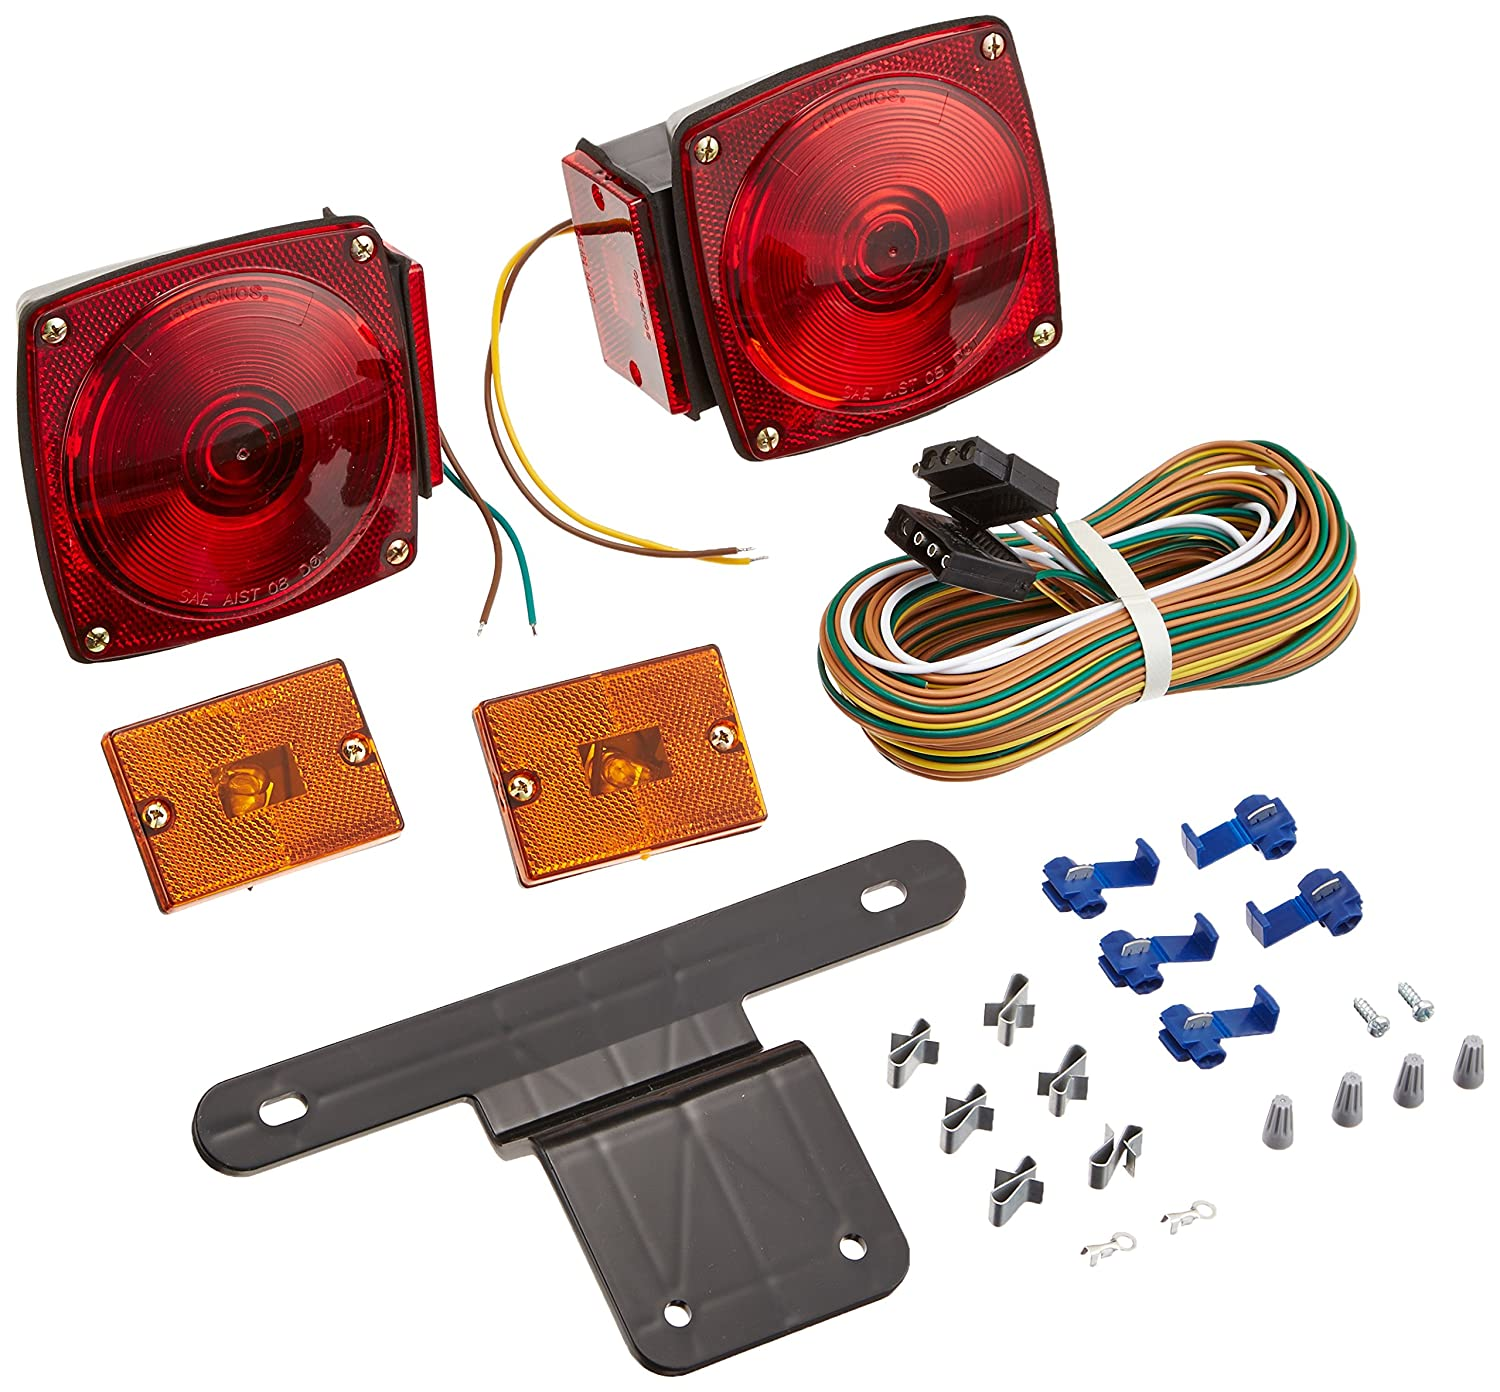 As Well Led Trailer Light Kit On Harbor Freight Wiring Optronics Tl5rk Submersible Combination Tail Sports Outdoors